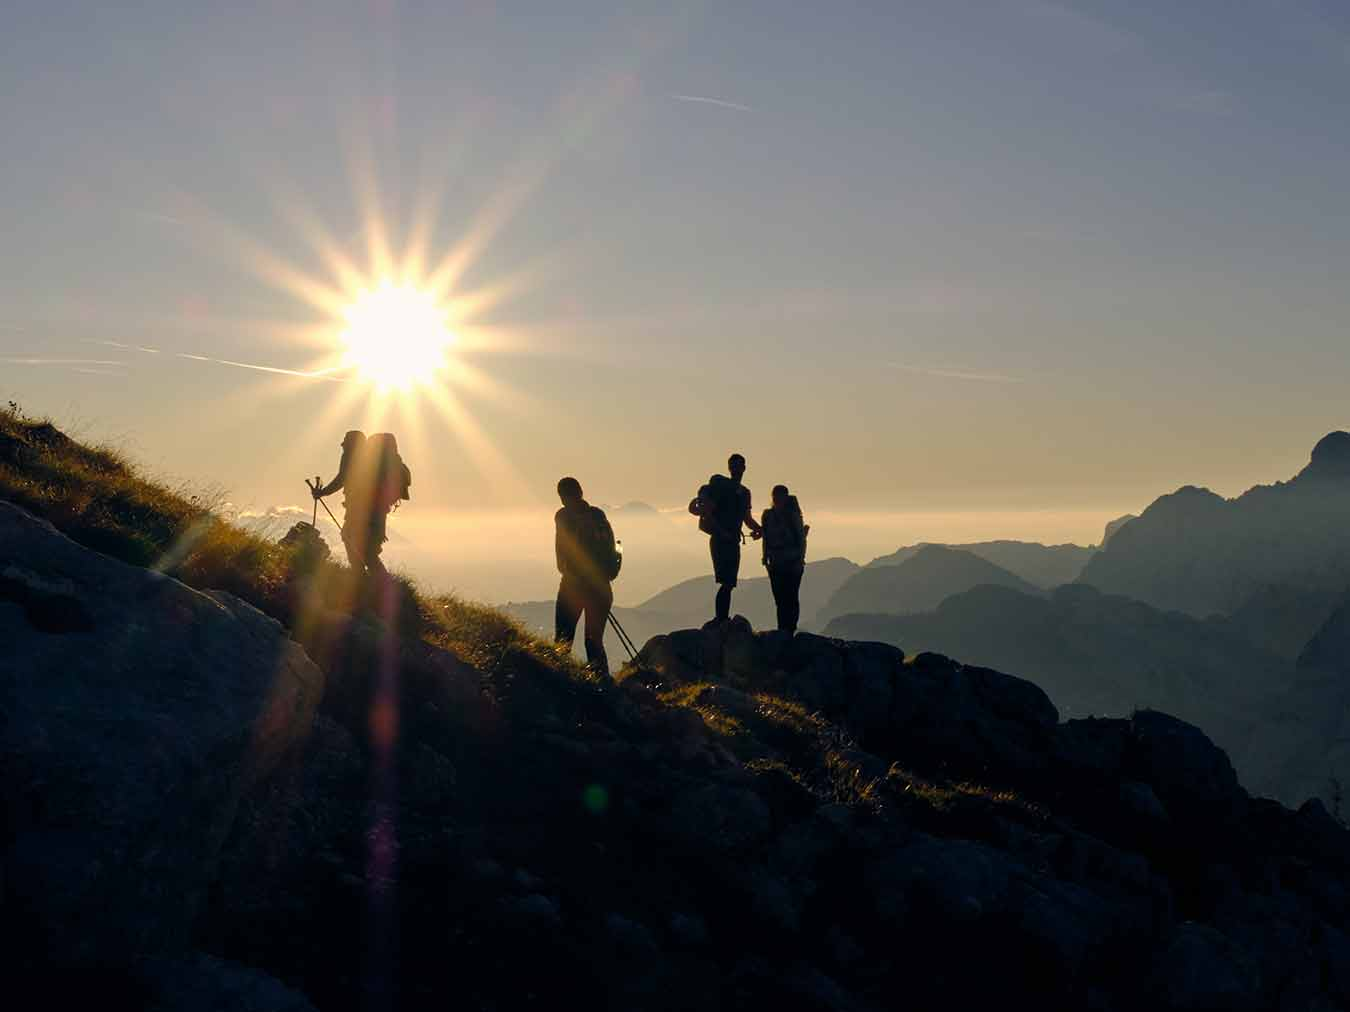 People at the top of a mountain at sunset